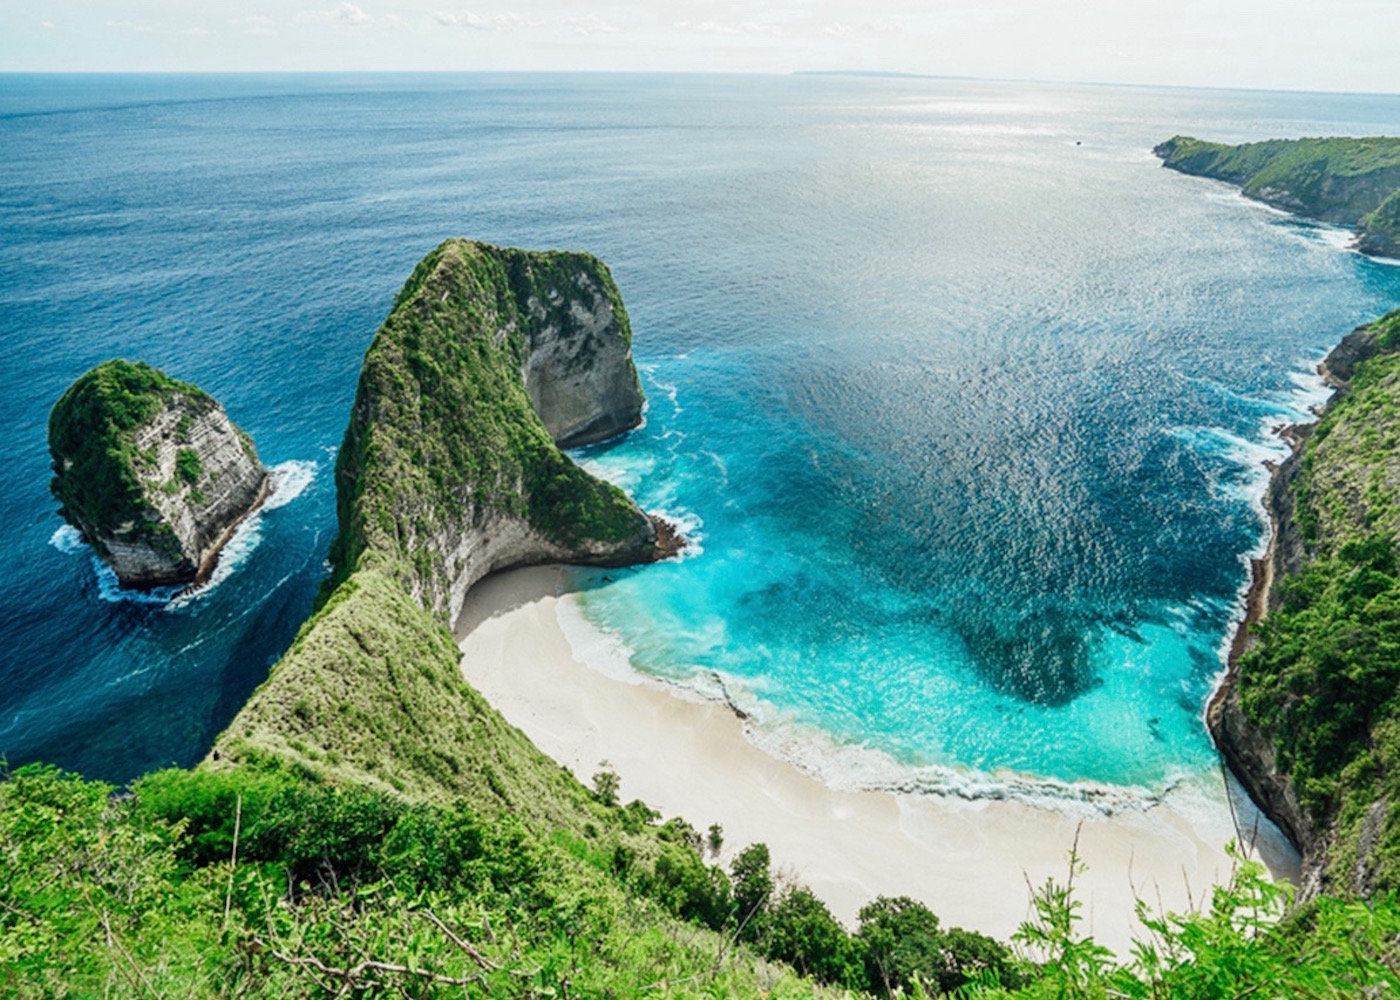 Kelingking Beach on Nusa Penida - one of the most beautiful places in Bali, Indonesia